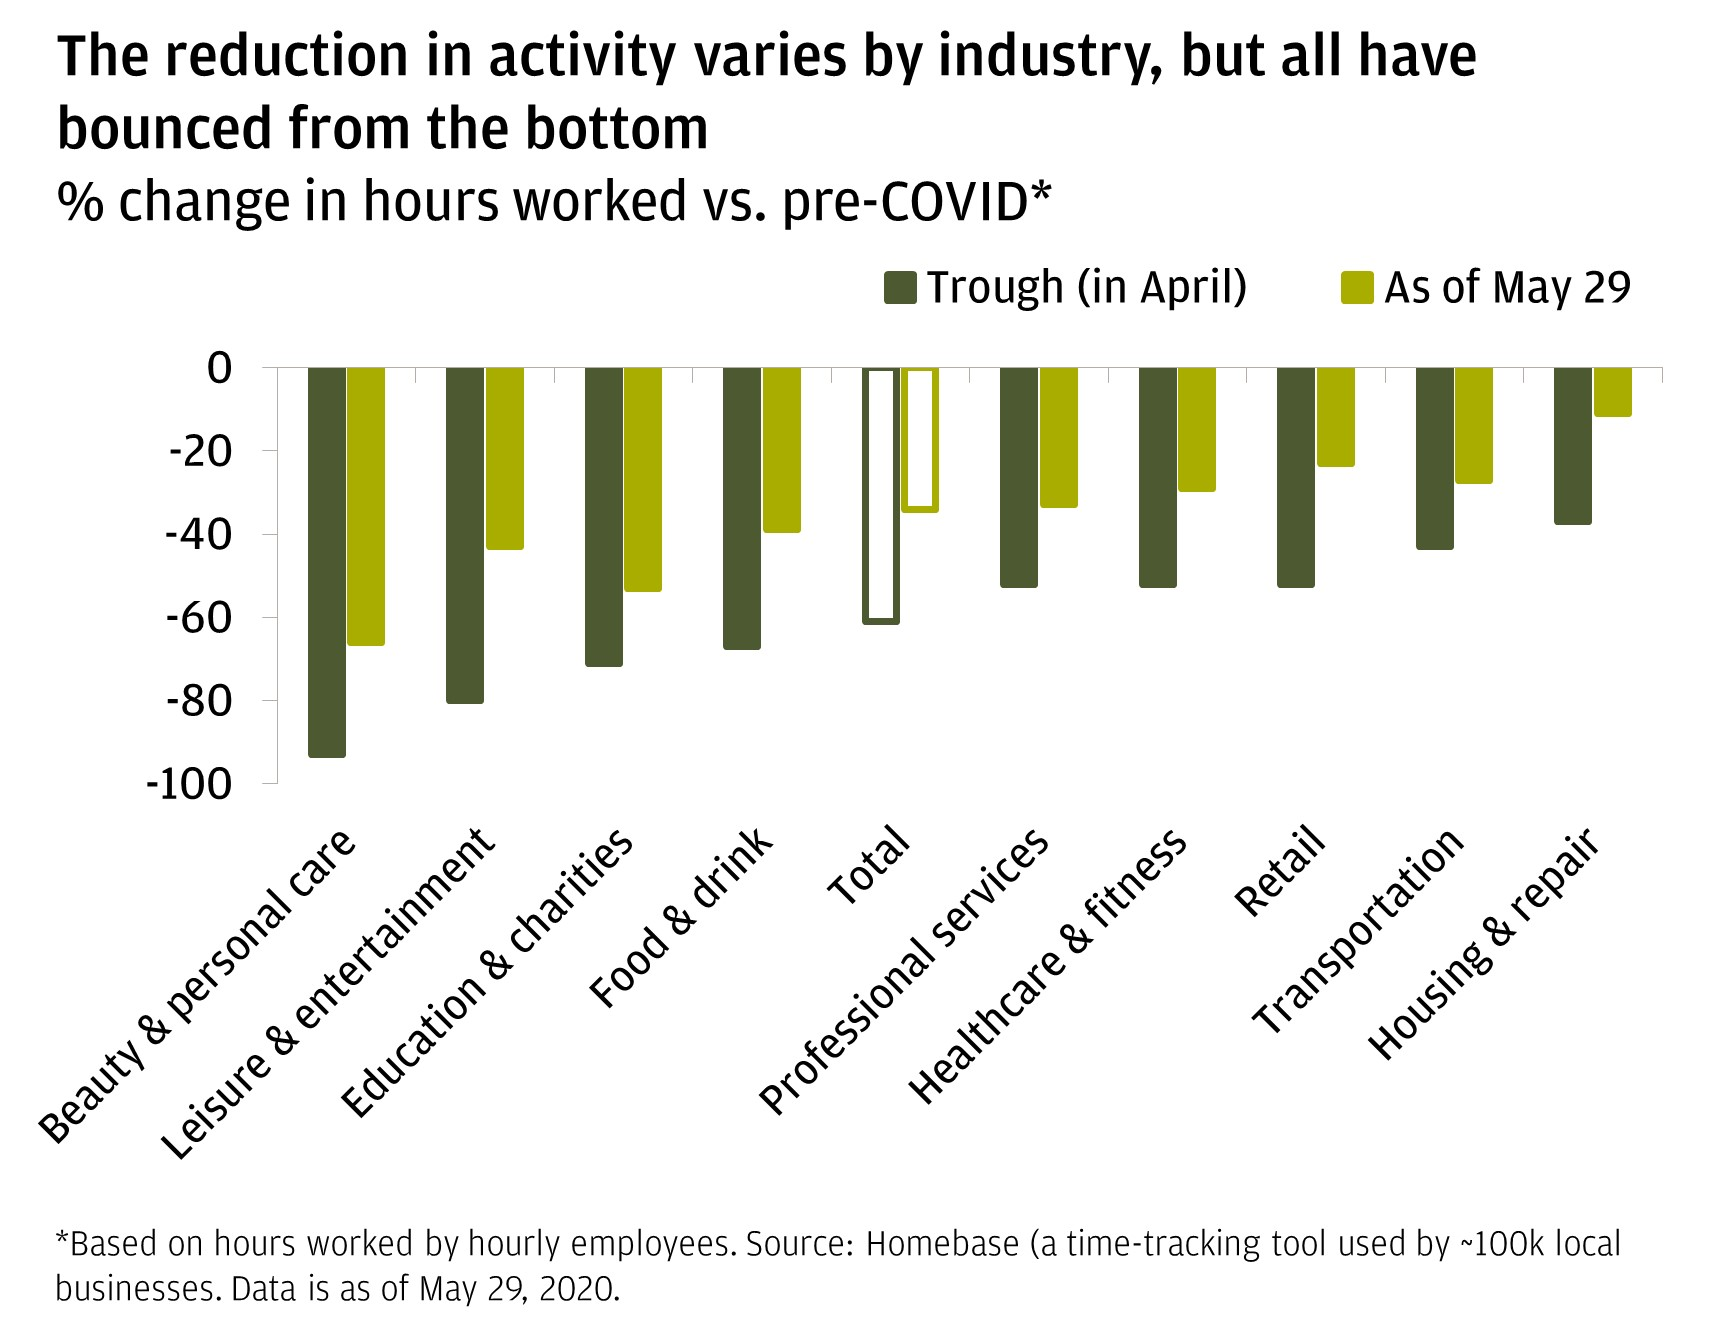 The bar chart shows the % change in hours worked from the trough in April versus as of May 29 for a variety of industries. It shows that although some have recovered more quickly than others, all have improved from their lowest points.